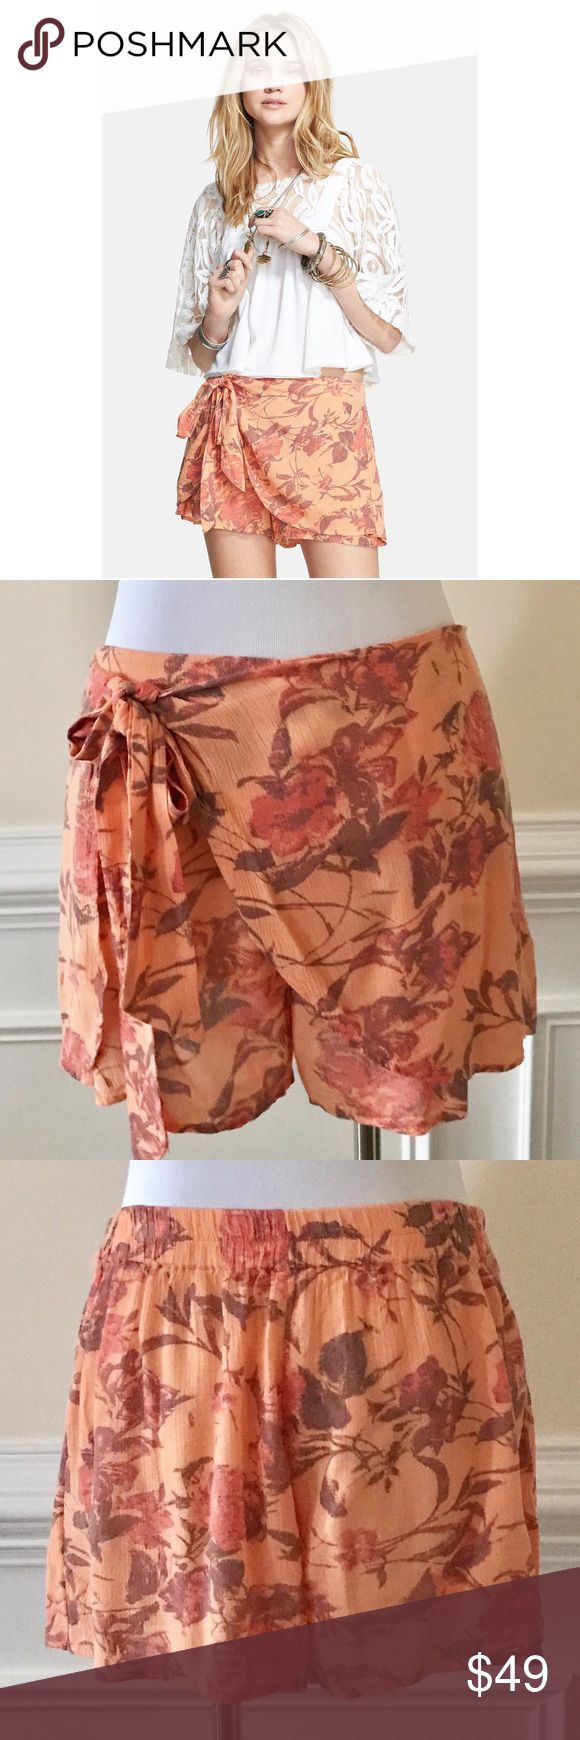 "New Free People Printed Sarong Short Cute shorts! Features a floral pattern, smocked elastic back waistband, flounce shorts and sarong skirt overlay with adjustable sash.  Tags in store to prevent returns.  Fabric tag is in Japanese. Imported Machine wash cold 100% Rayon 3"" inseam F690P981 Free People Shorts"